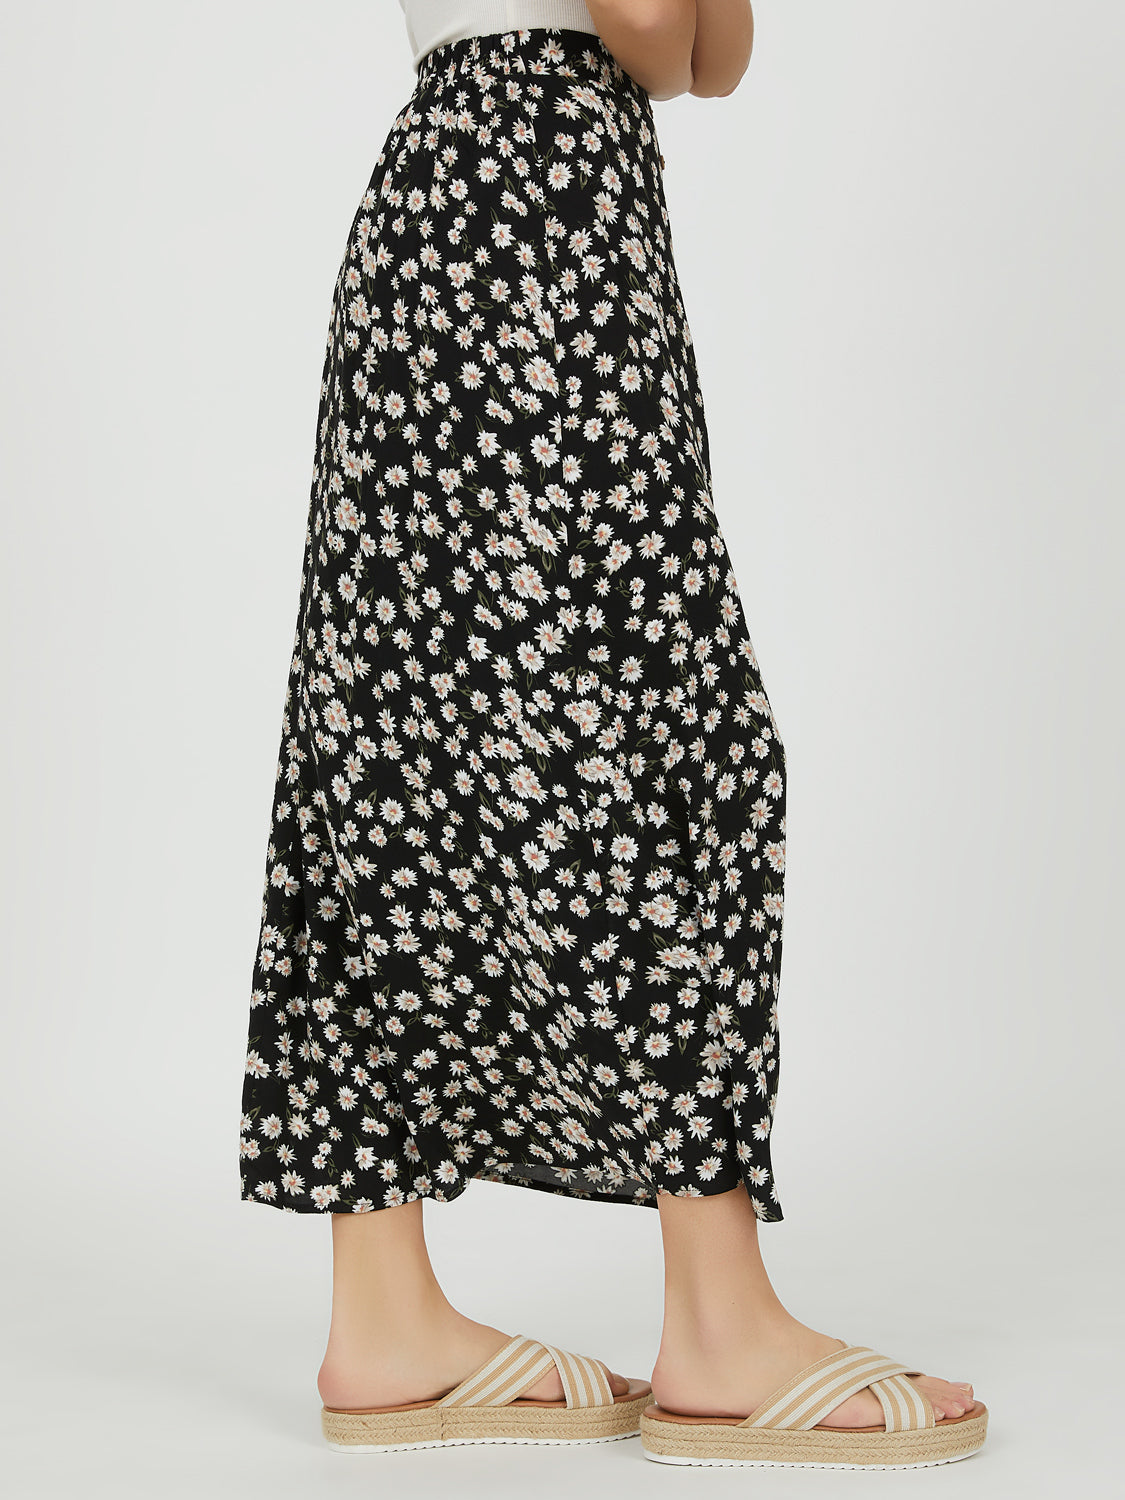 Button-Down Floral Maxi Skirt